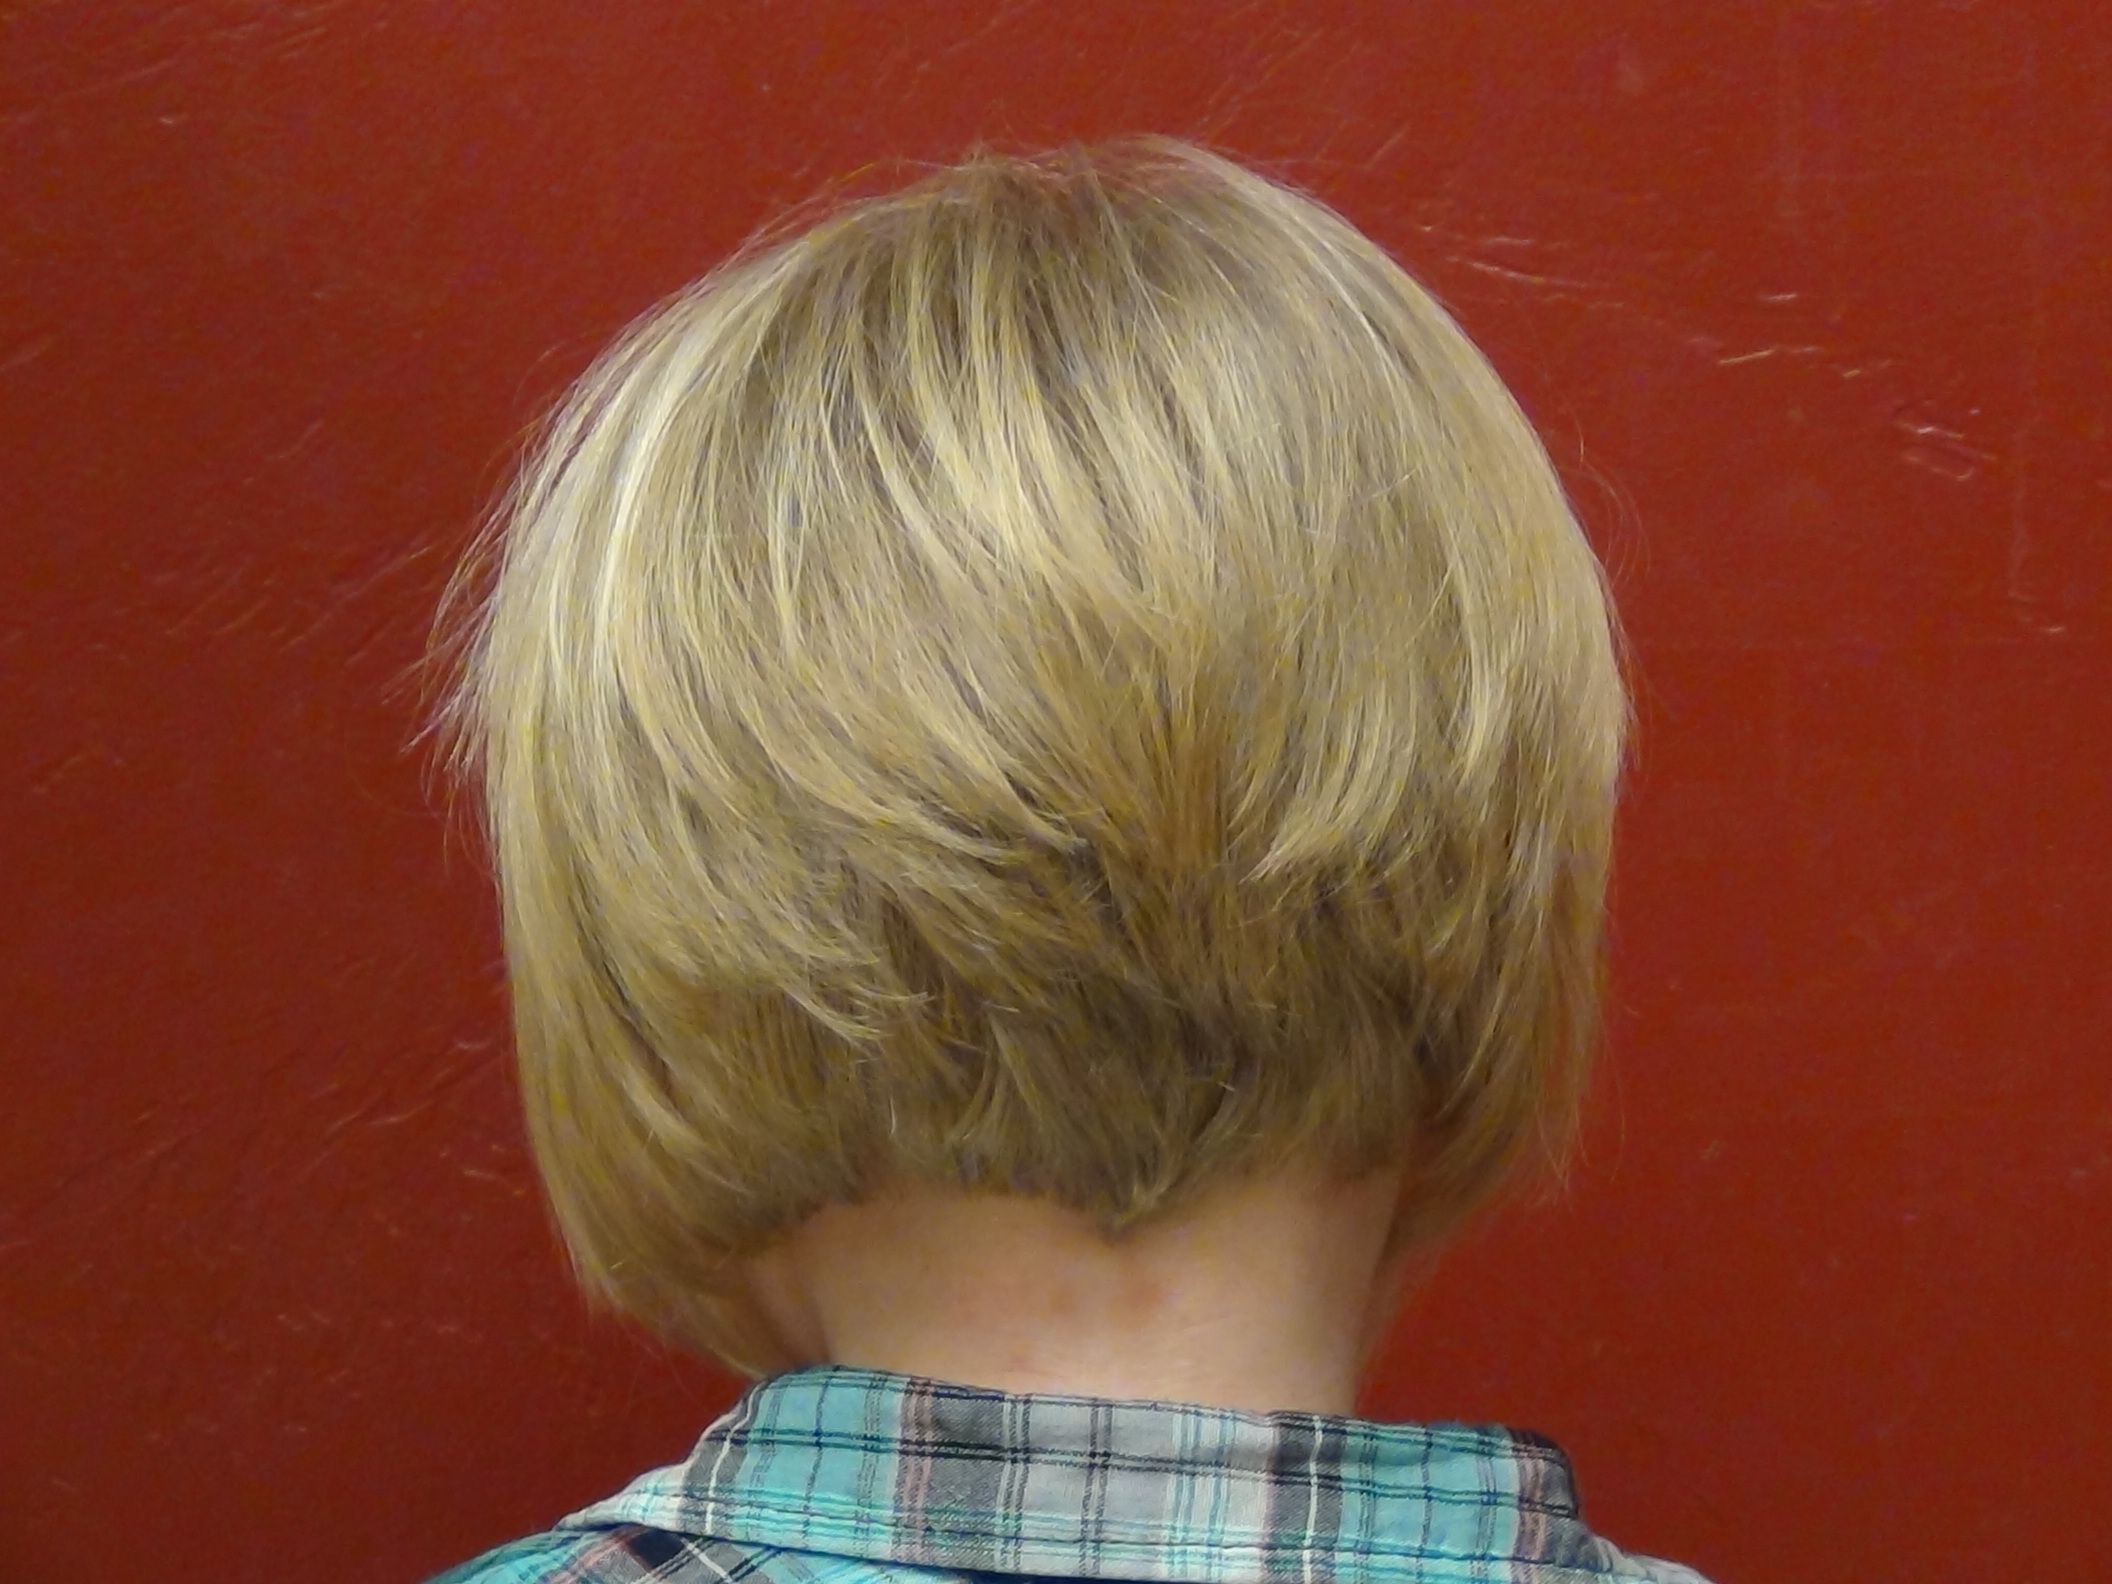 line hair style a line bob haircut for hairstyles boys and 5175 | f7dd3be56410462a7e196fea2df05af1